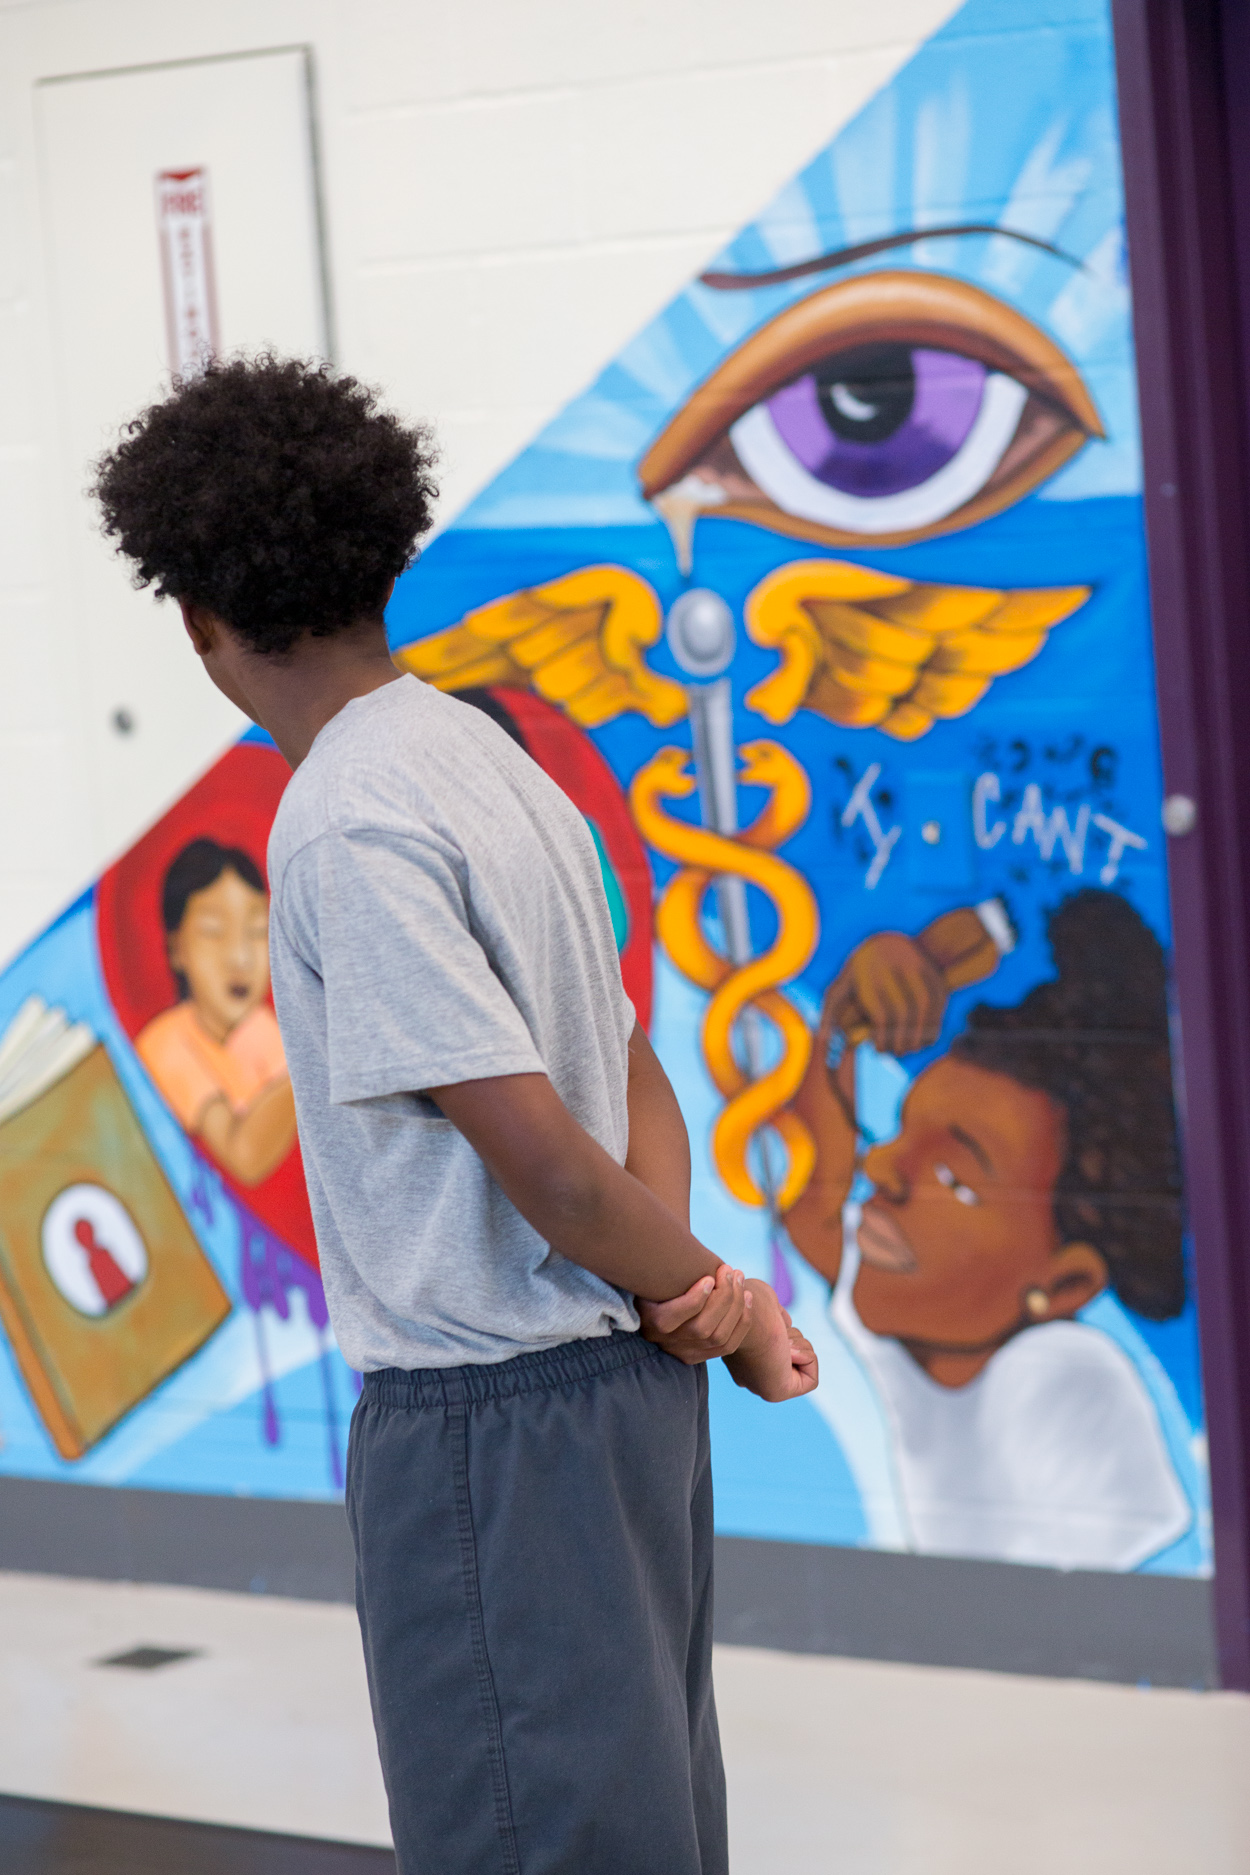 With Art for Amnesty - AIYN dedicates Hope Center mural at Central Juvenile Hall. A youth artist explains his contribution to the group mural.